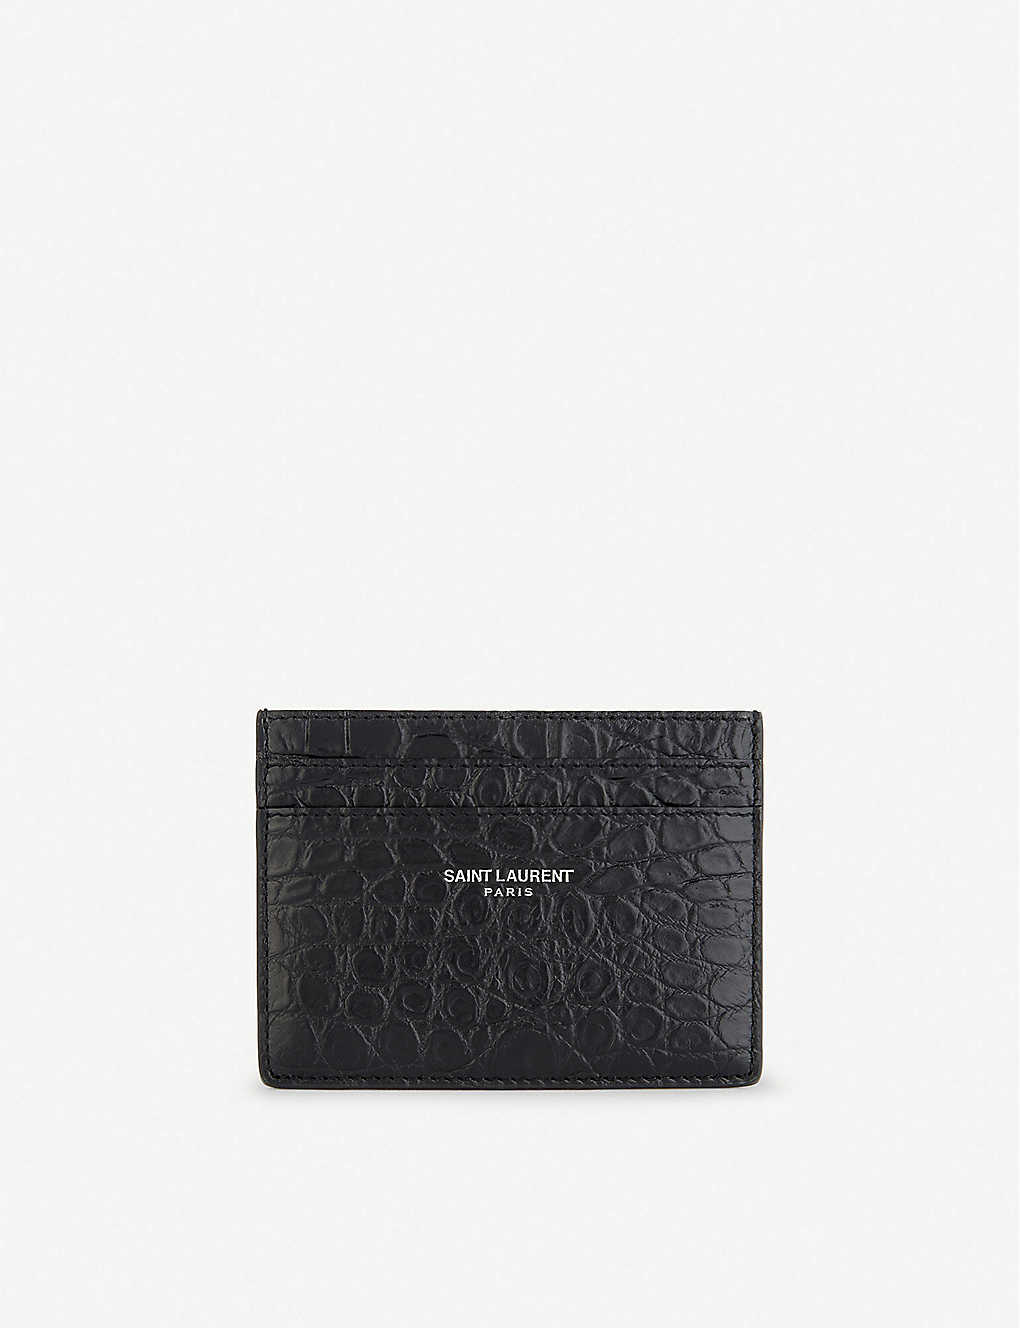 fa7d6cf7025 SAINT LAURENT - Leather crocodile embossed card holder | Selfridges.com